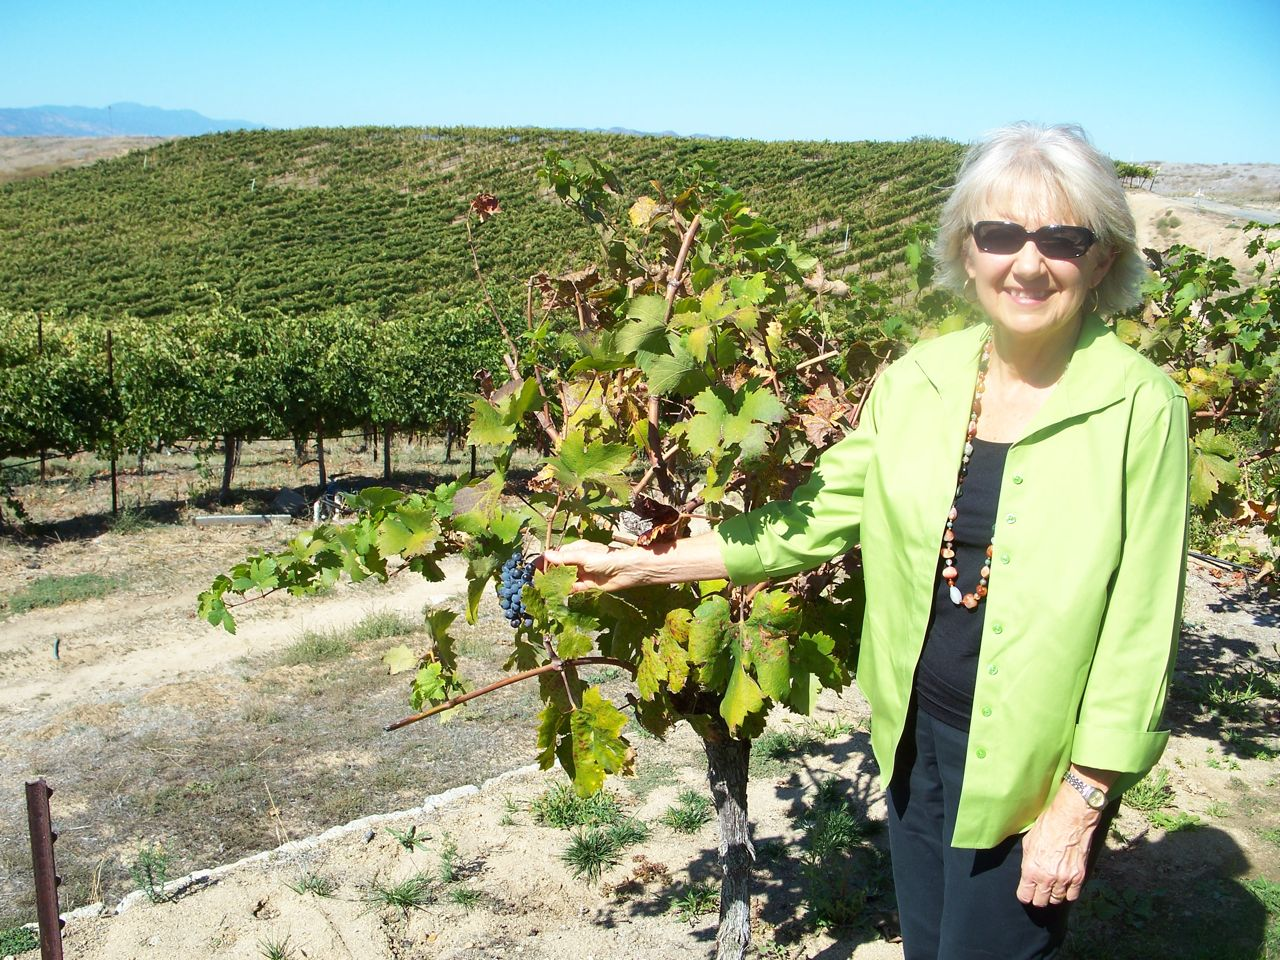 jan at the harvest